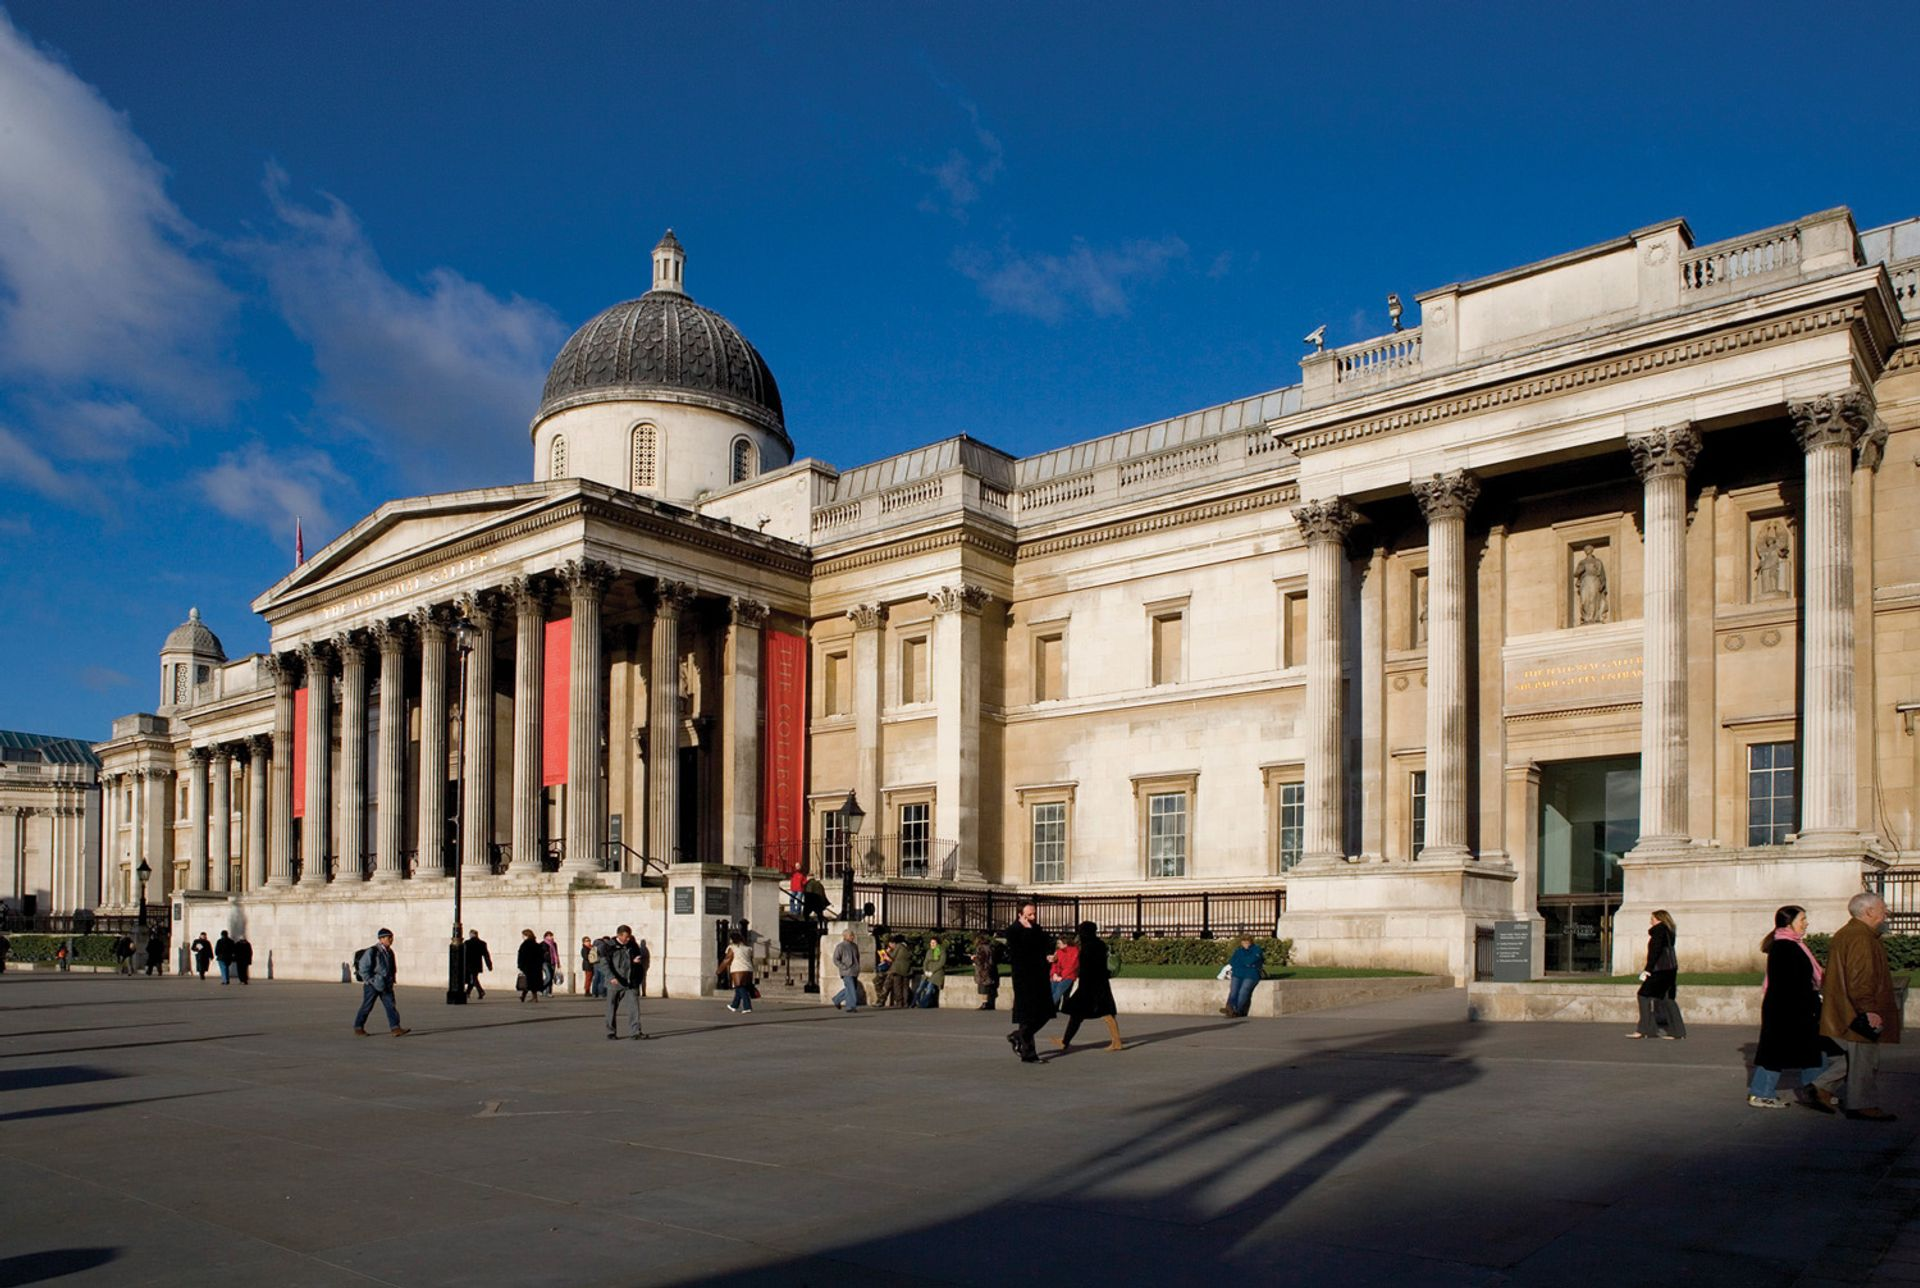 Twenty-seven educators are bringing a legal case against the National Gallery in London National Gallery